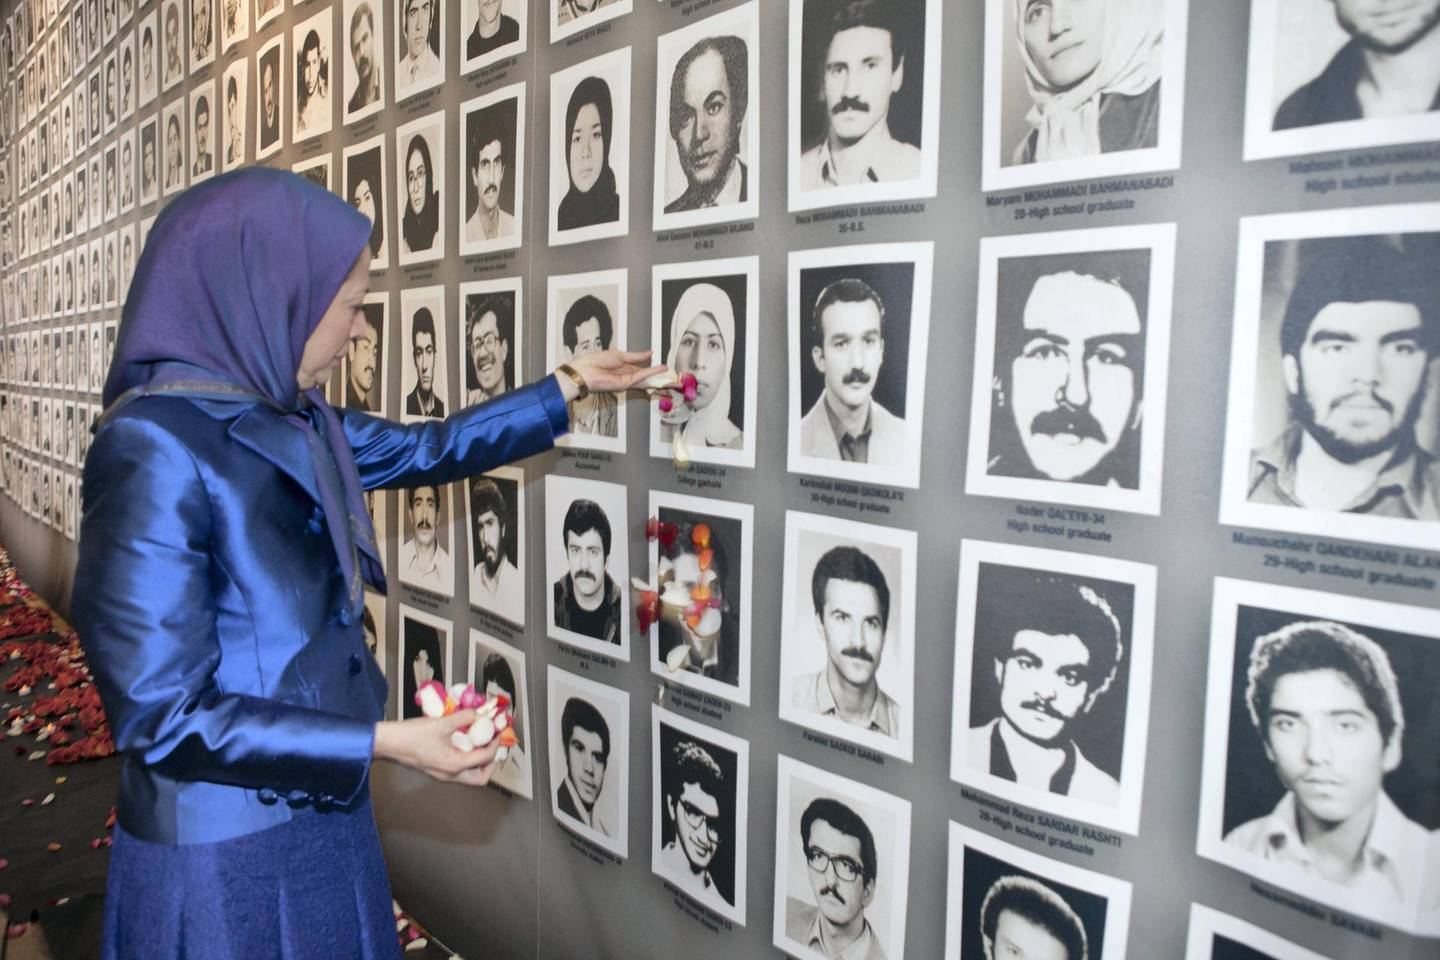 Maryam Rajavi, president-elect of the National Council of Resistance of Iran (NCRI) has called upon the U.N. to bring to justice those responsible for the massacre of 30,000 political prisoners in Iran during a visit to an exposition in Paris about these events. Jacques Boutaut, mayor of Paris' 2nd district, was also in attendance.  (Photo by Siavosh Hosseini/NurPhoto via Getty Images)